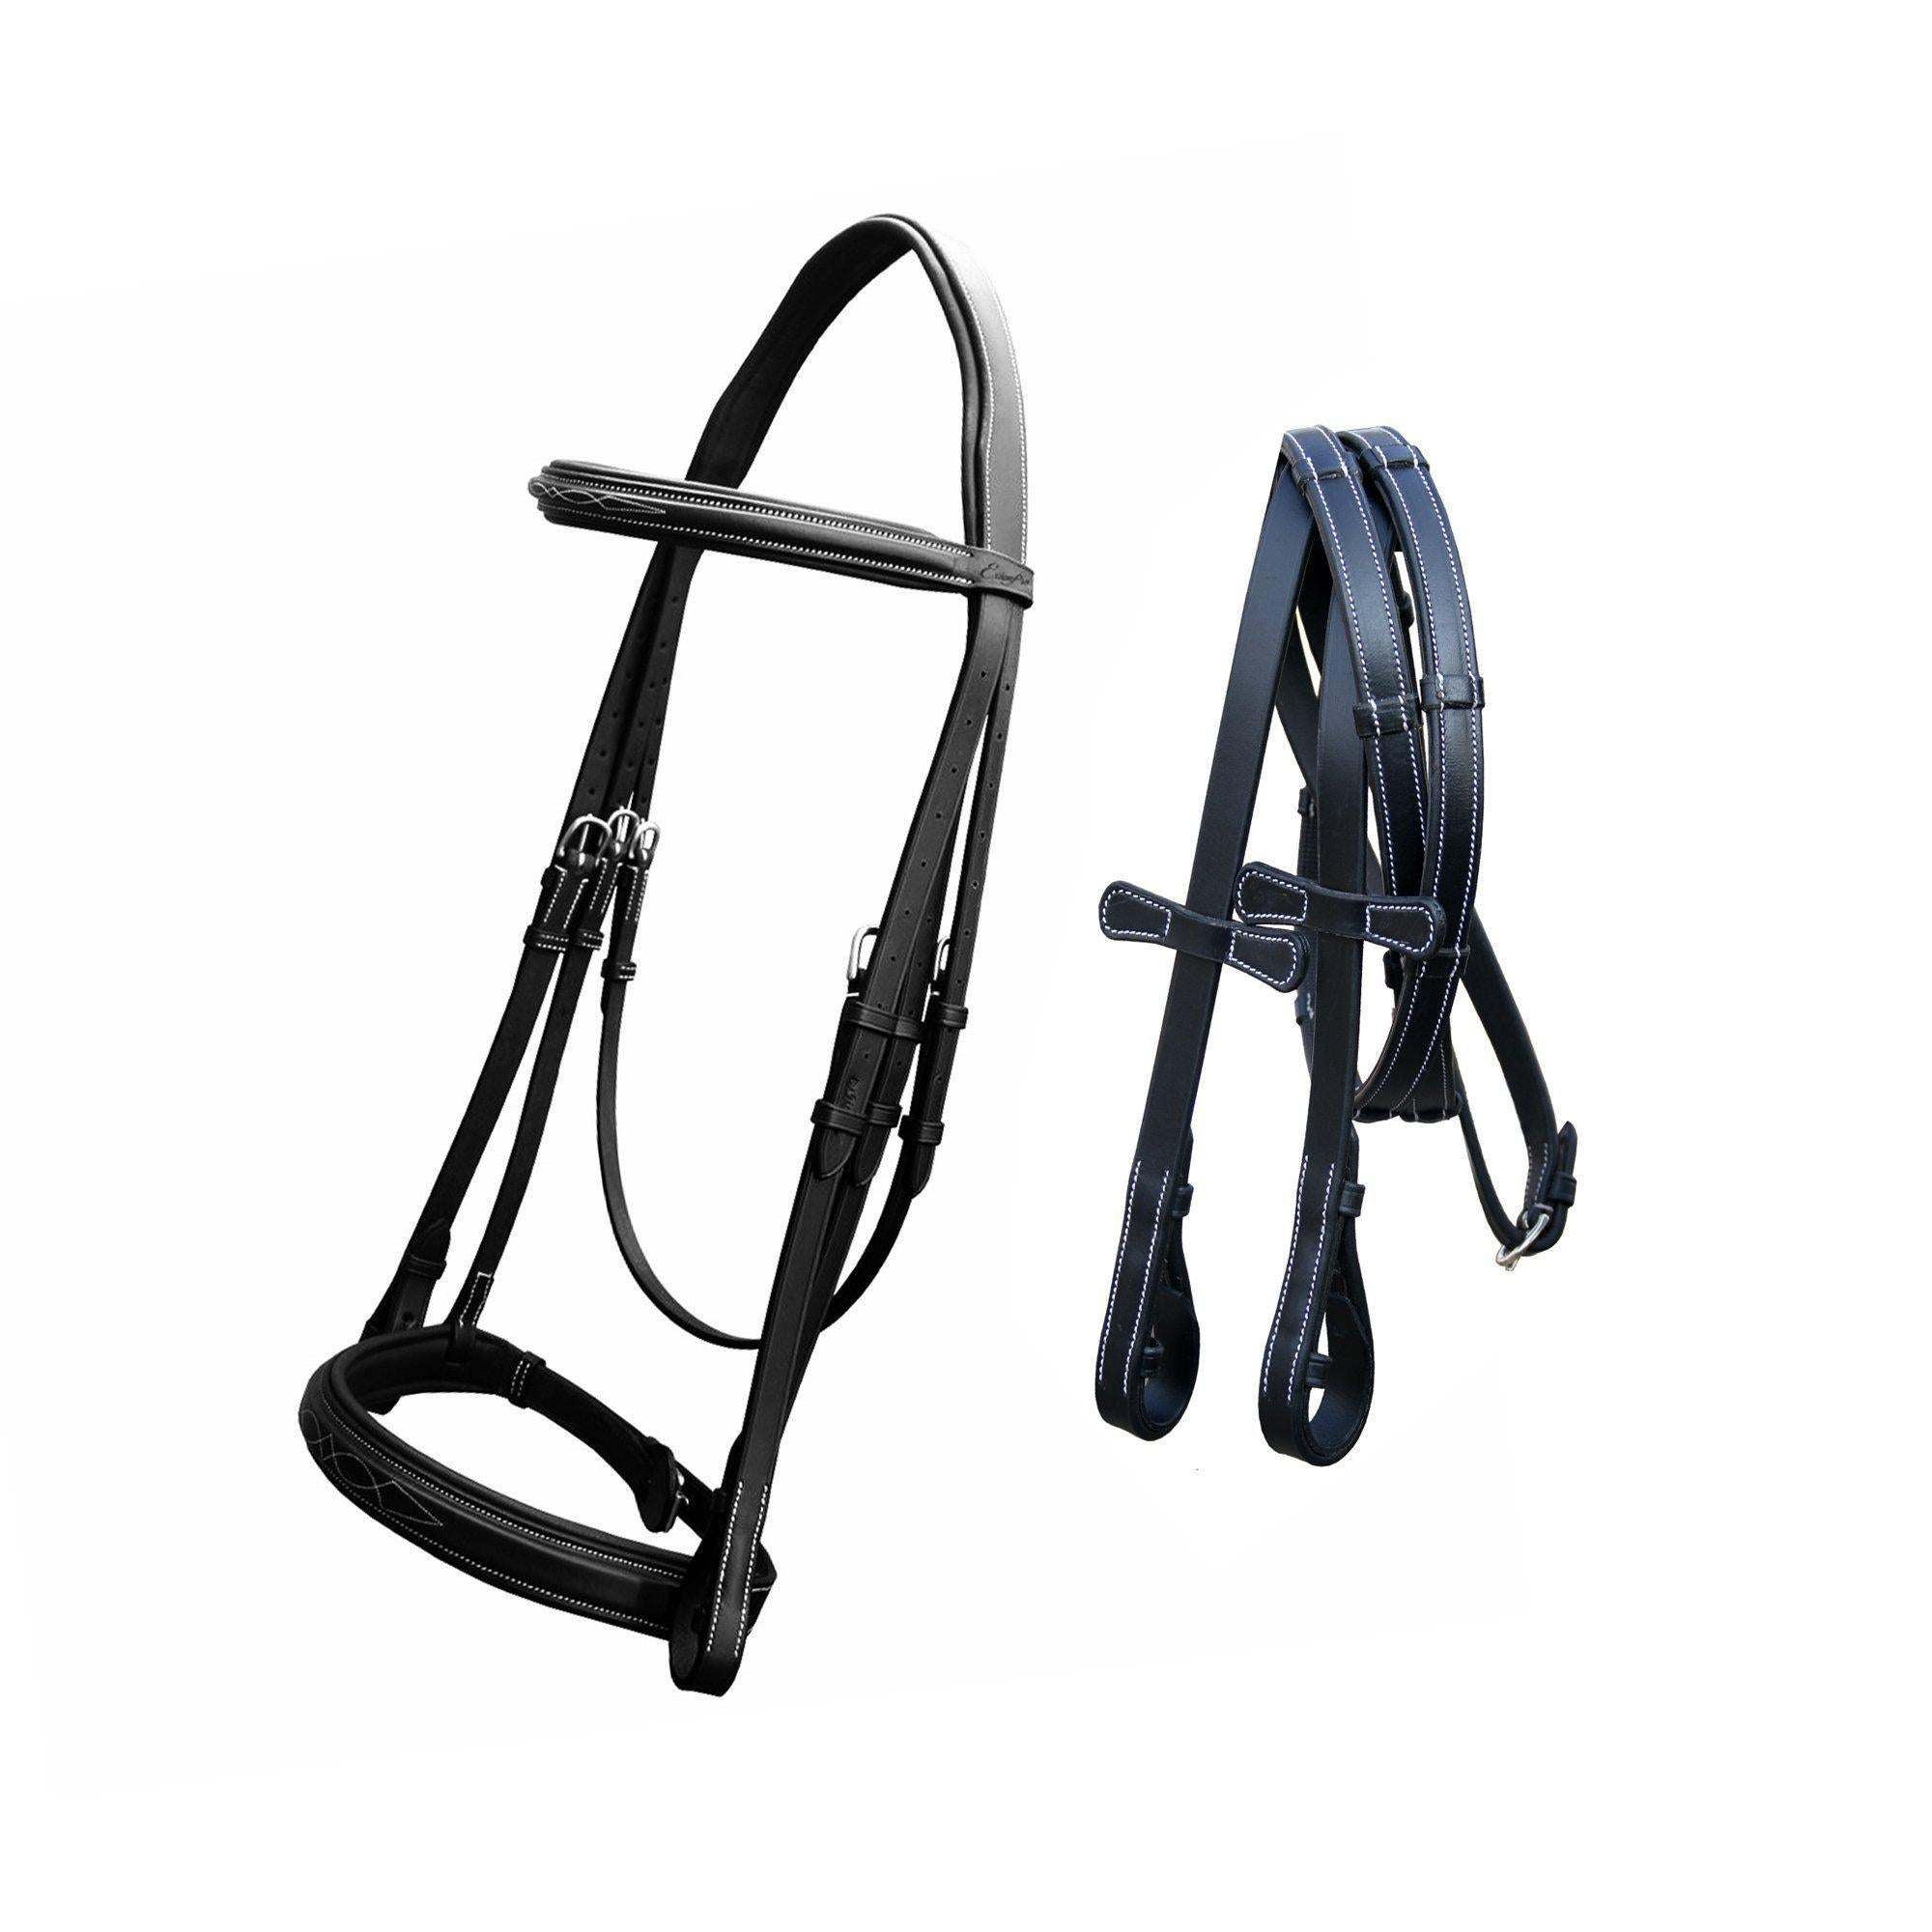 Quality English Horse Riding Tack Shop Supplier Bridles Reins